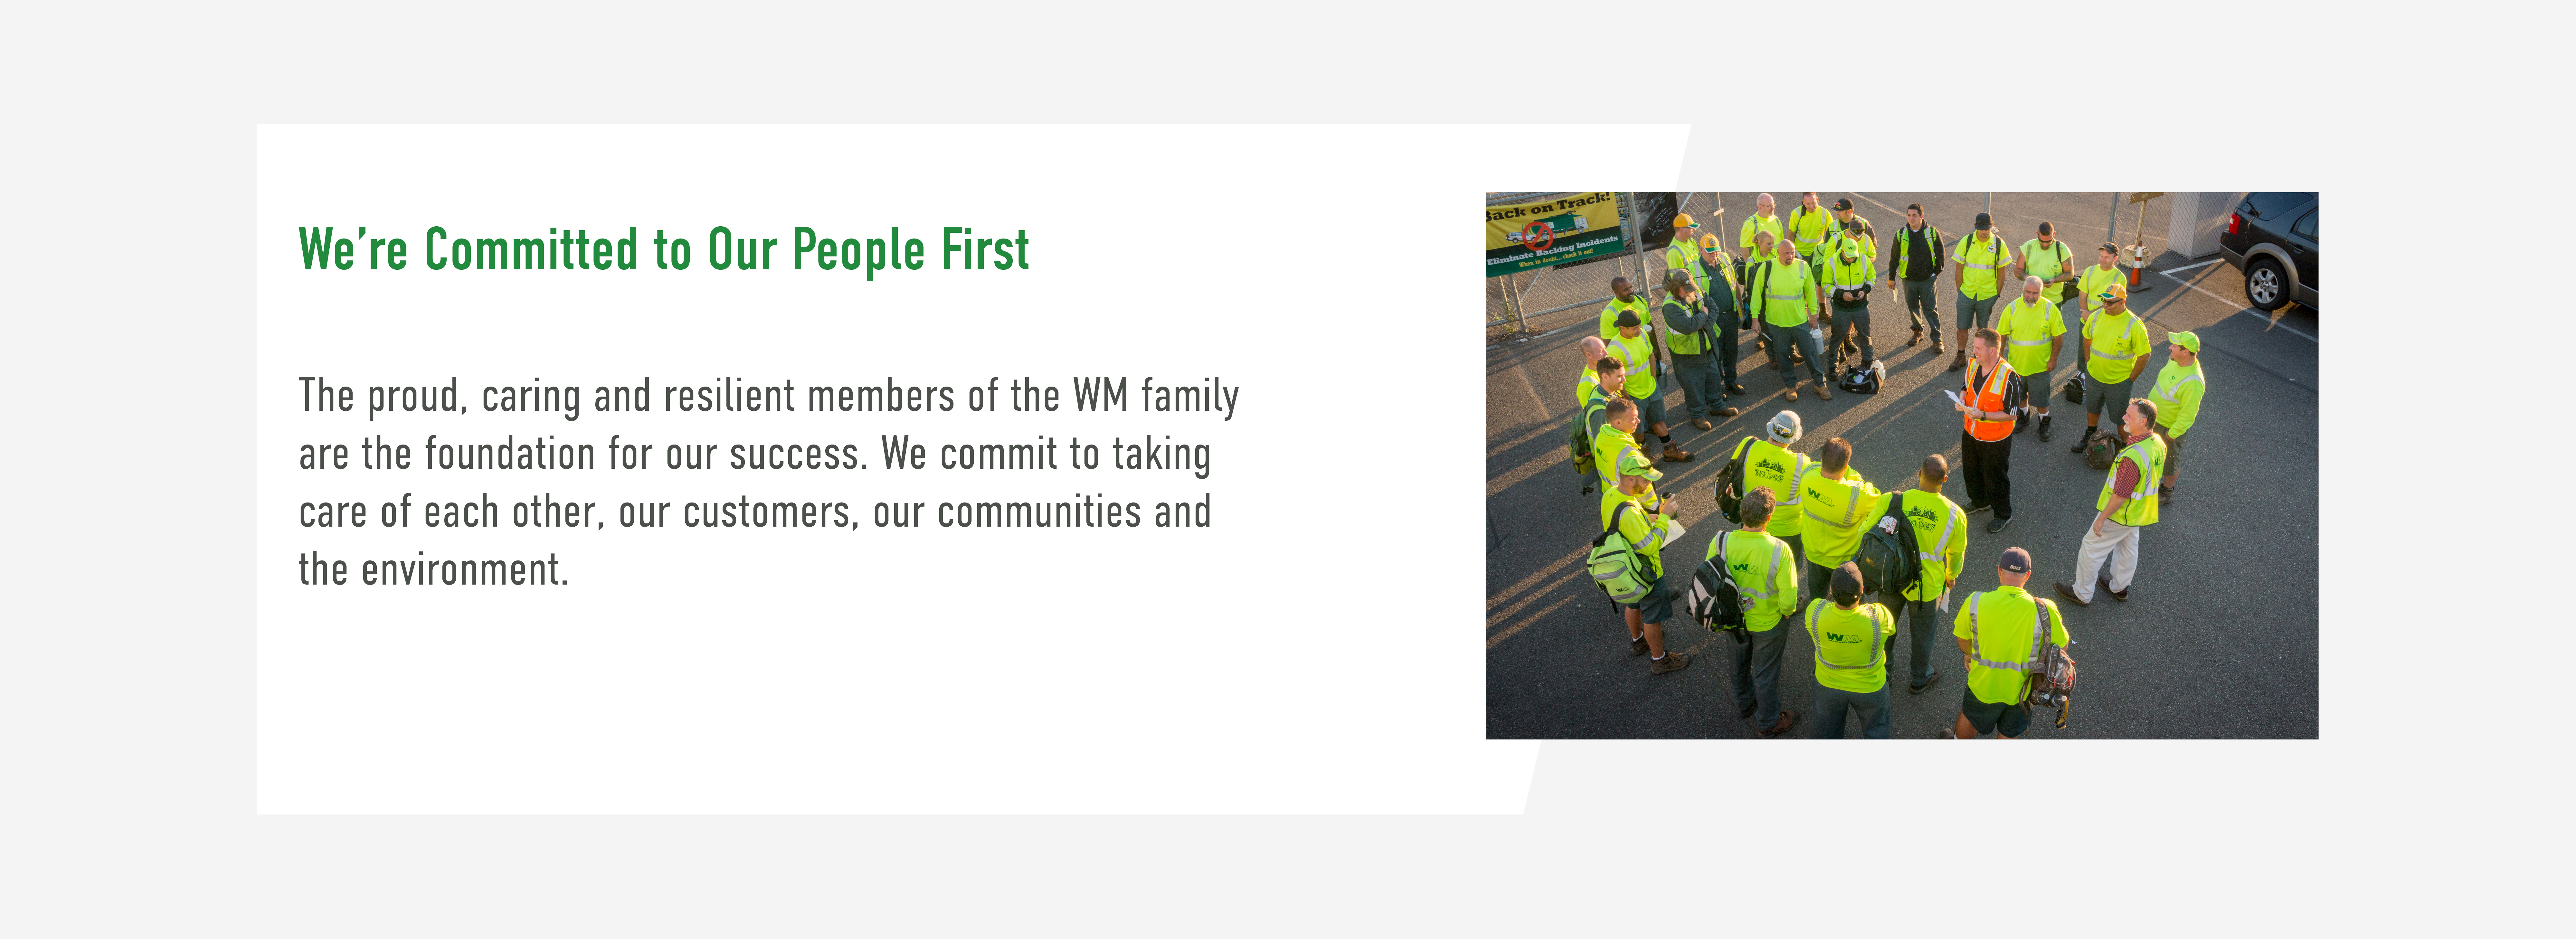 We're committed to our people first. The proud, caring and resilient members of the WM family are the foundation for our success. We commit to taking care of each other, our customers, our communities and the environment.